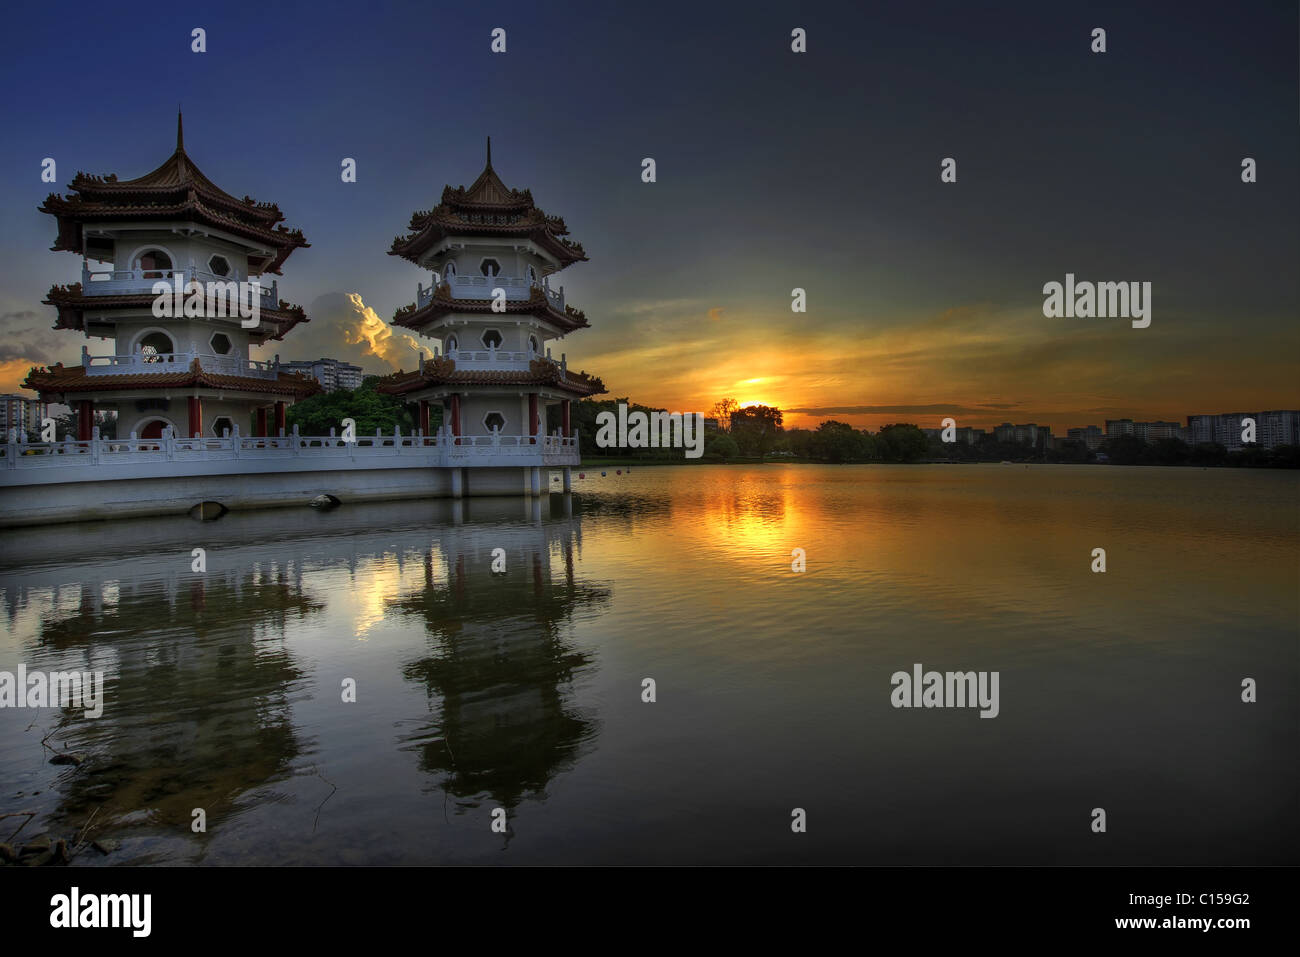 Sunset at Singapore Chinese Garden Twin Pagodas - Stock Image